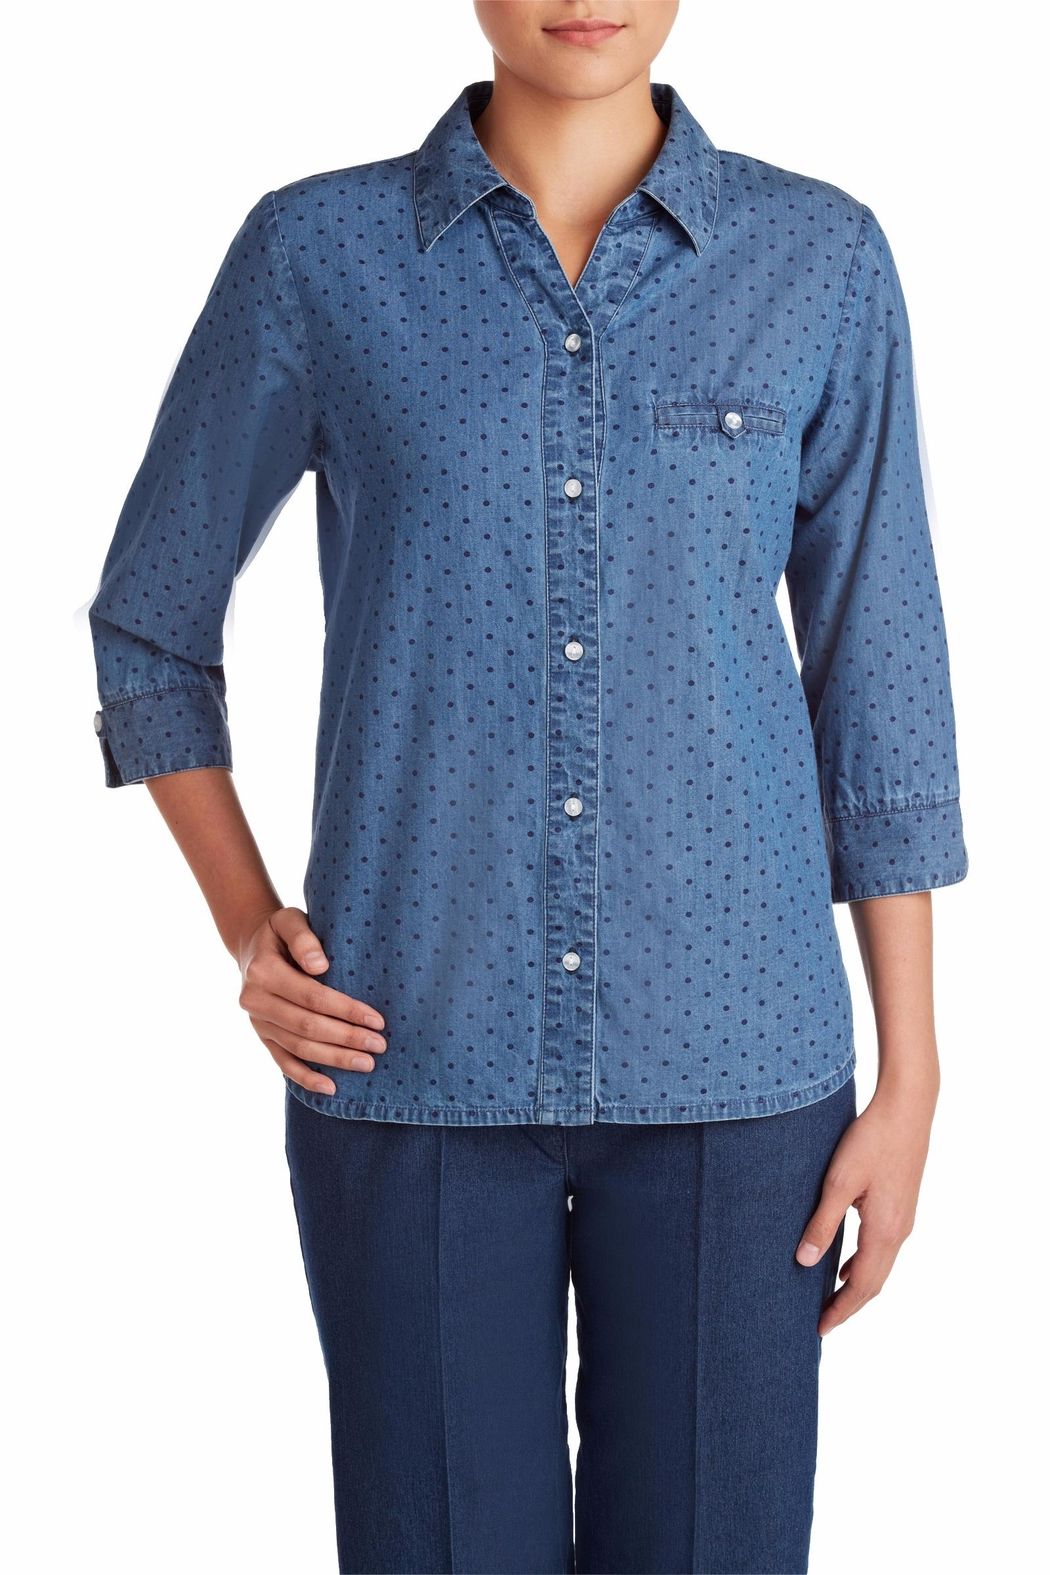 Allison Daley Navy Dot Blouse - Front Cropped Image